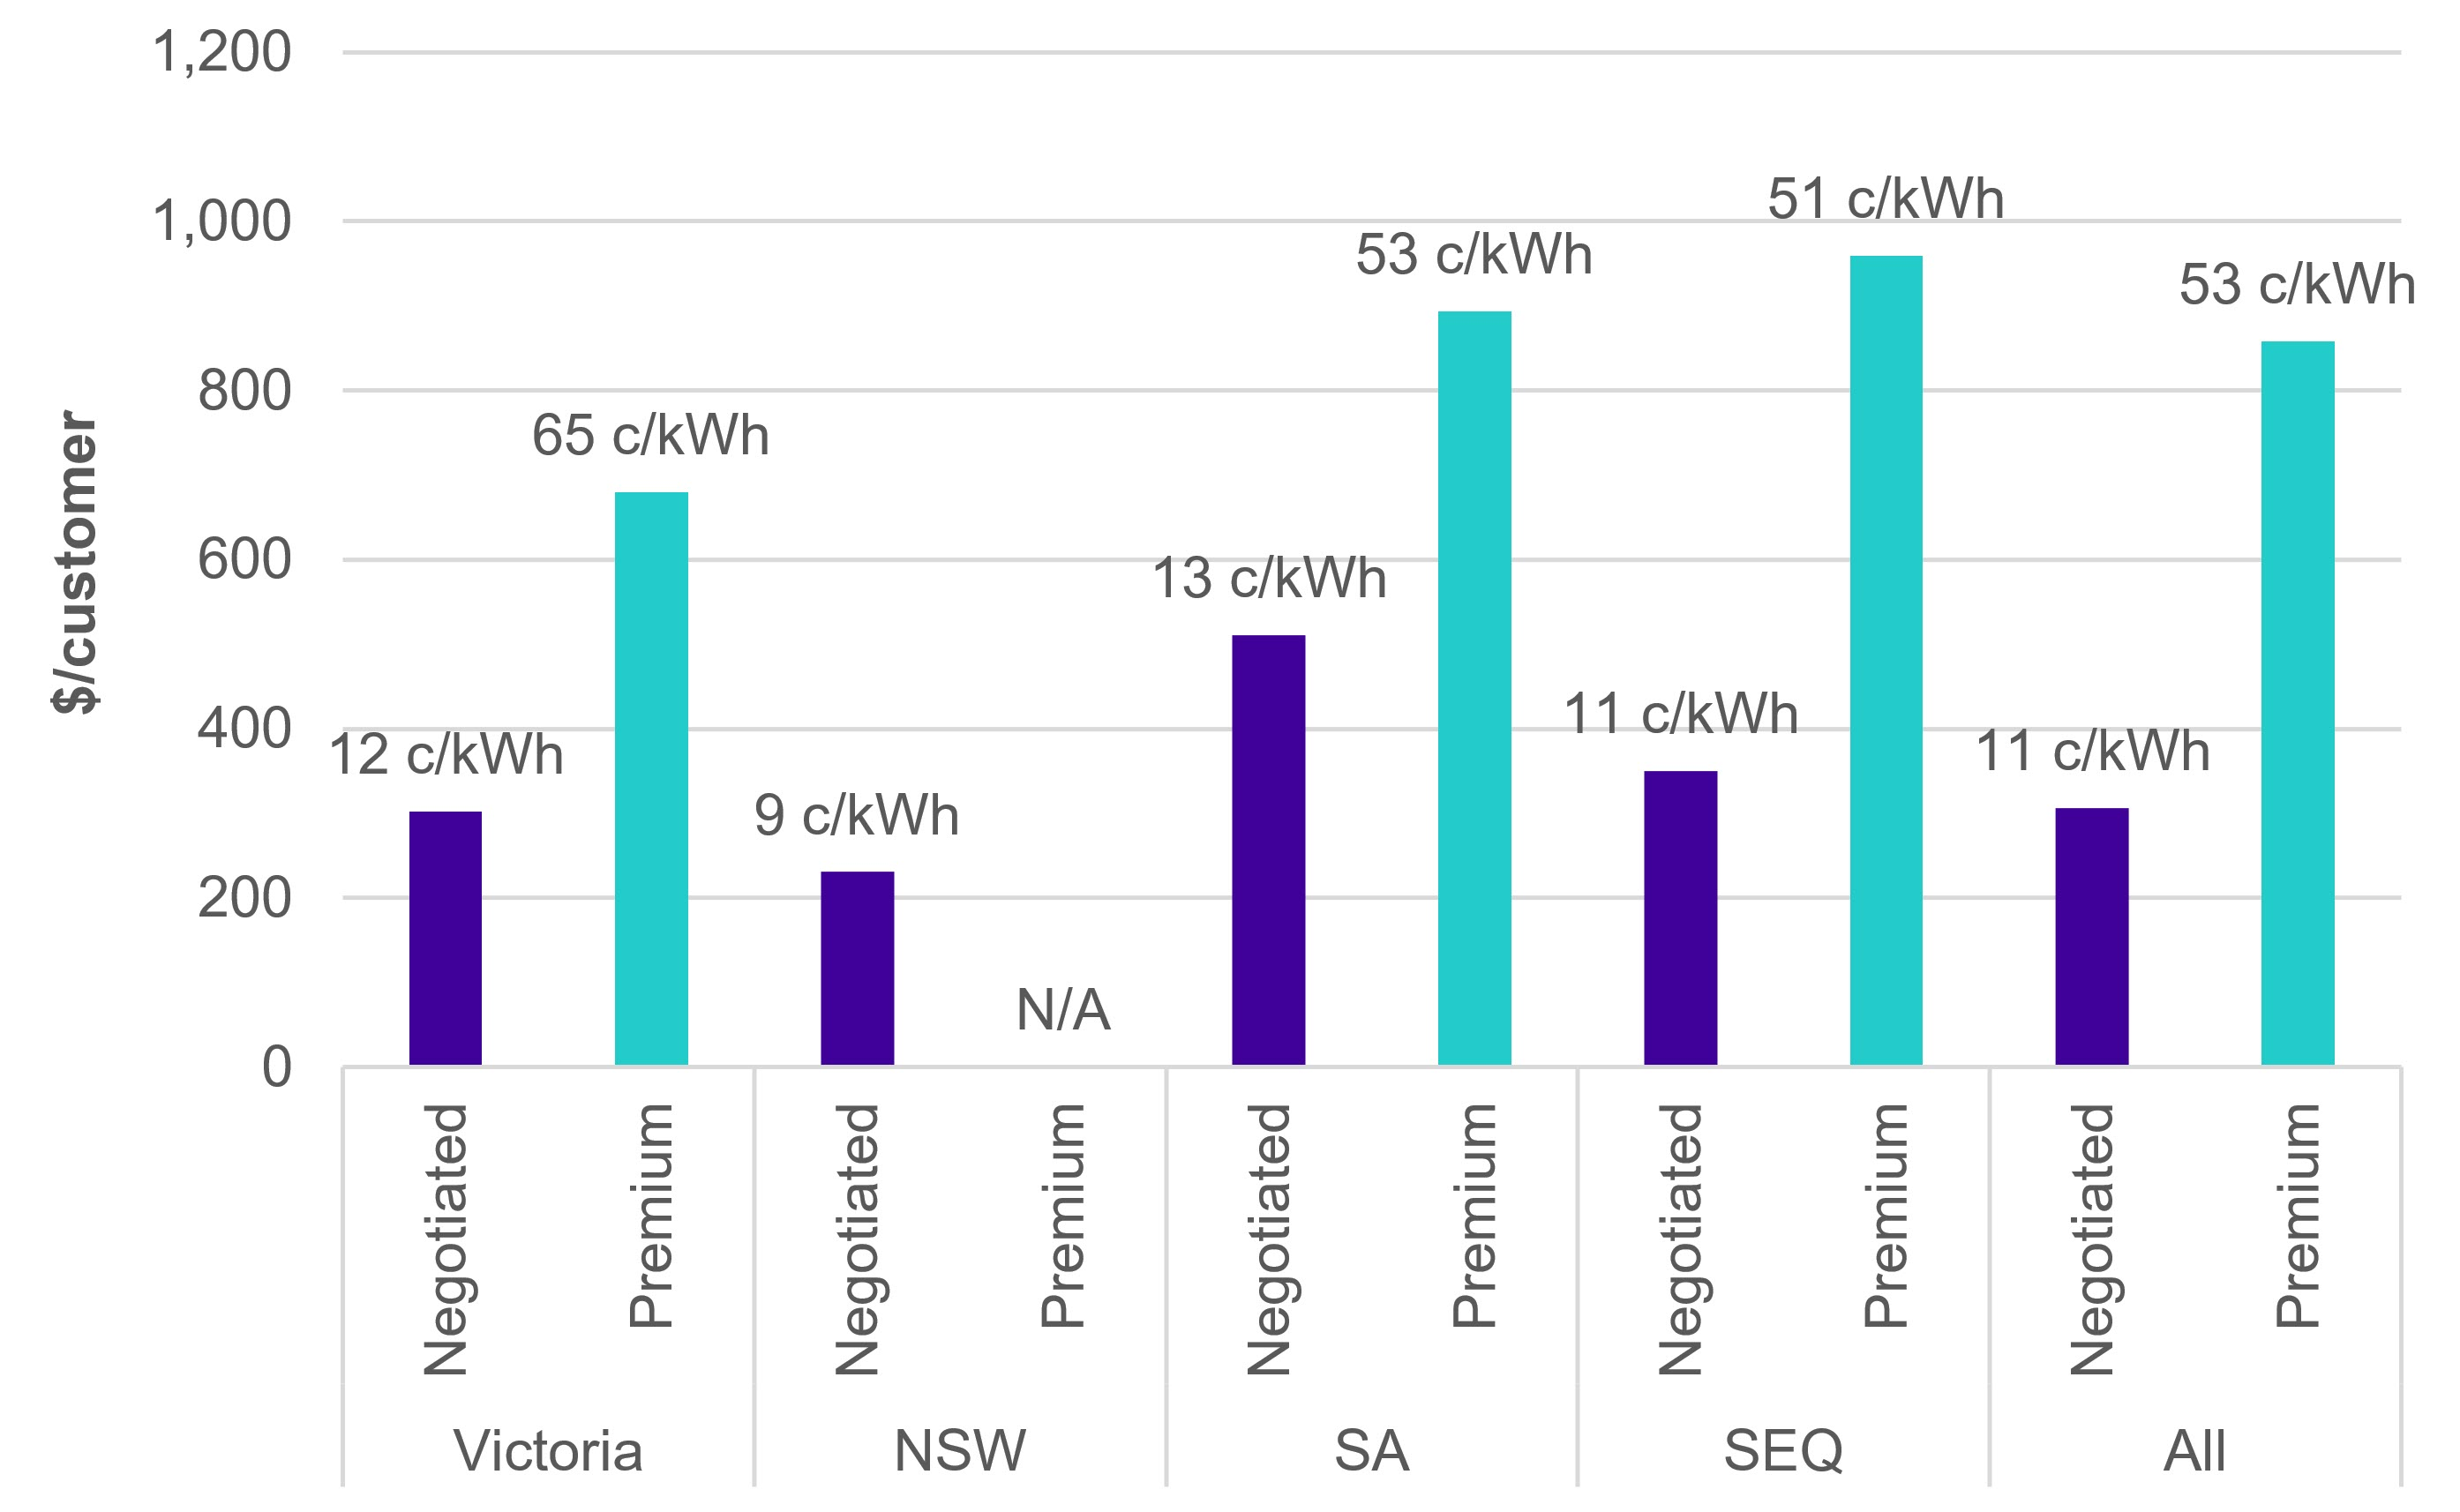 Annual solar rebates are almost five times higher for early adopters who installed solar under premium tariff rates